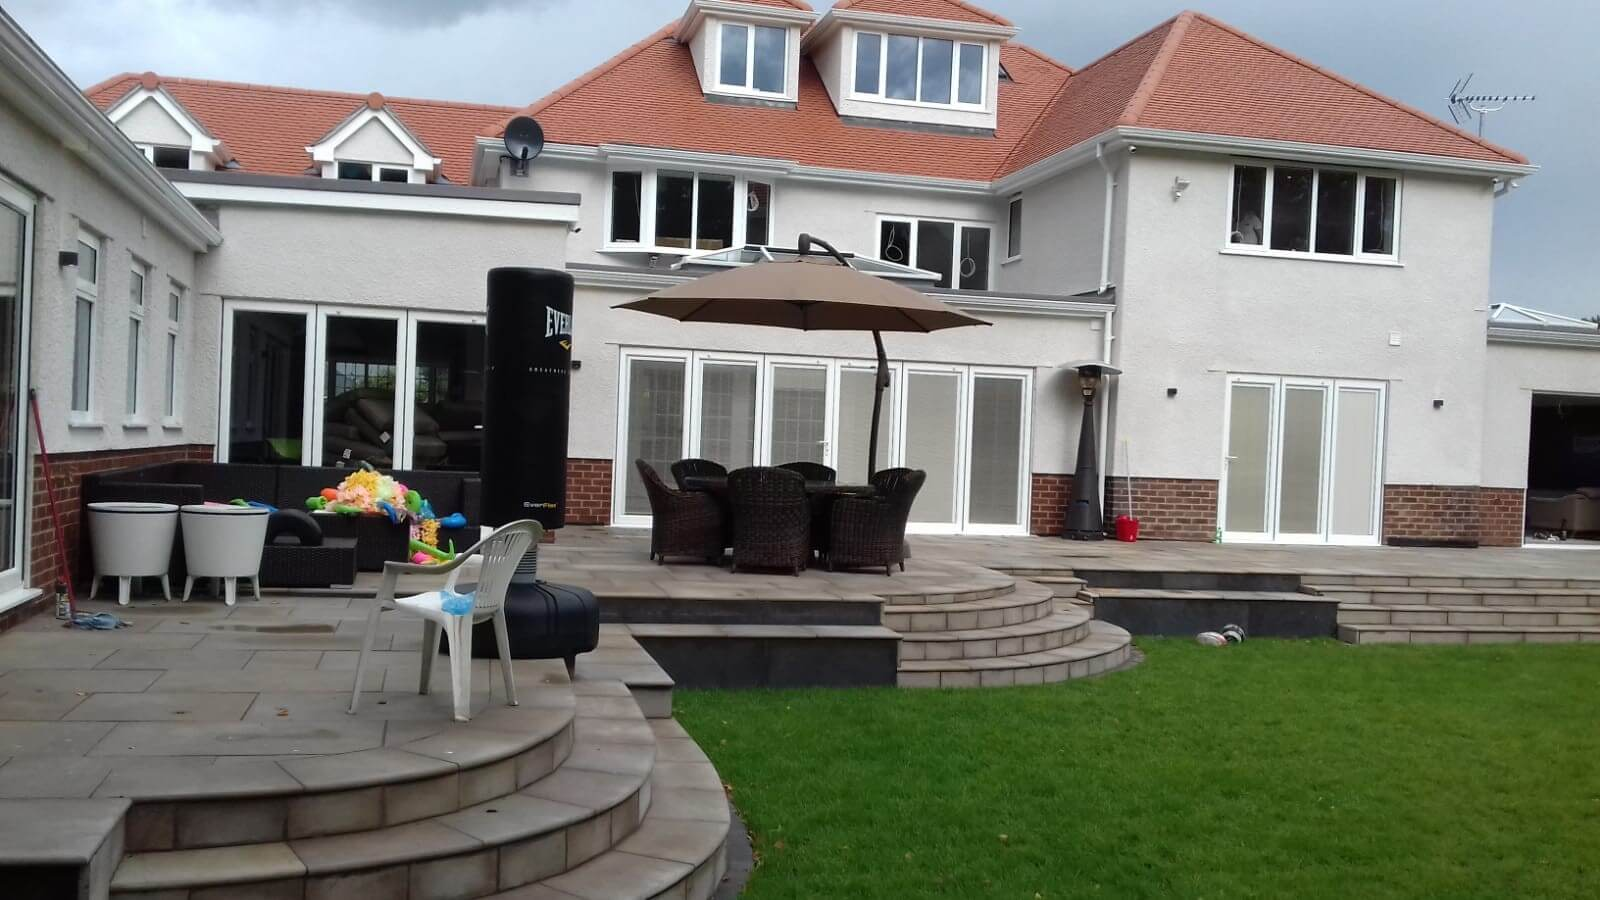 celsius home improvements, windows, doors, bi folds, bi folding doors, liverpool, merseyside